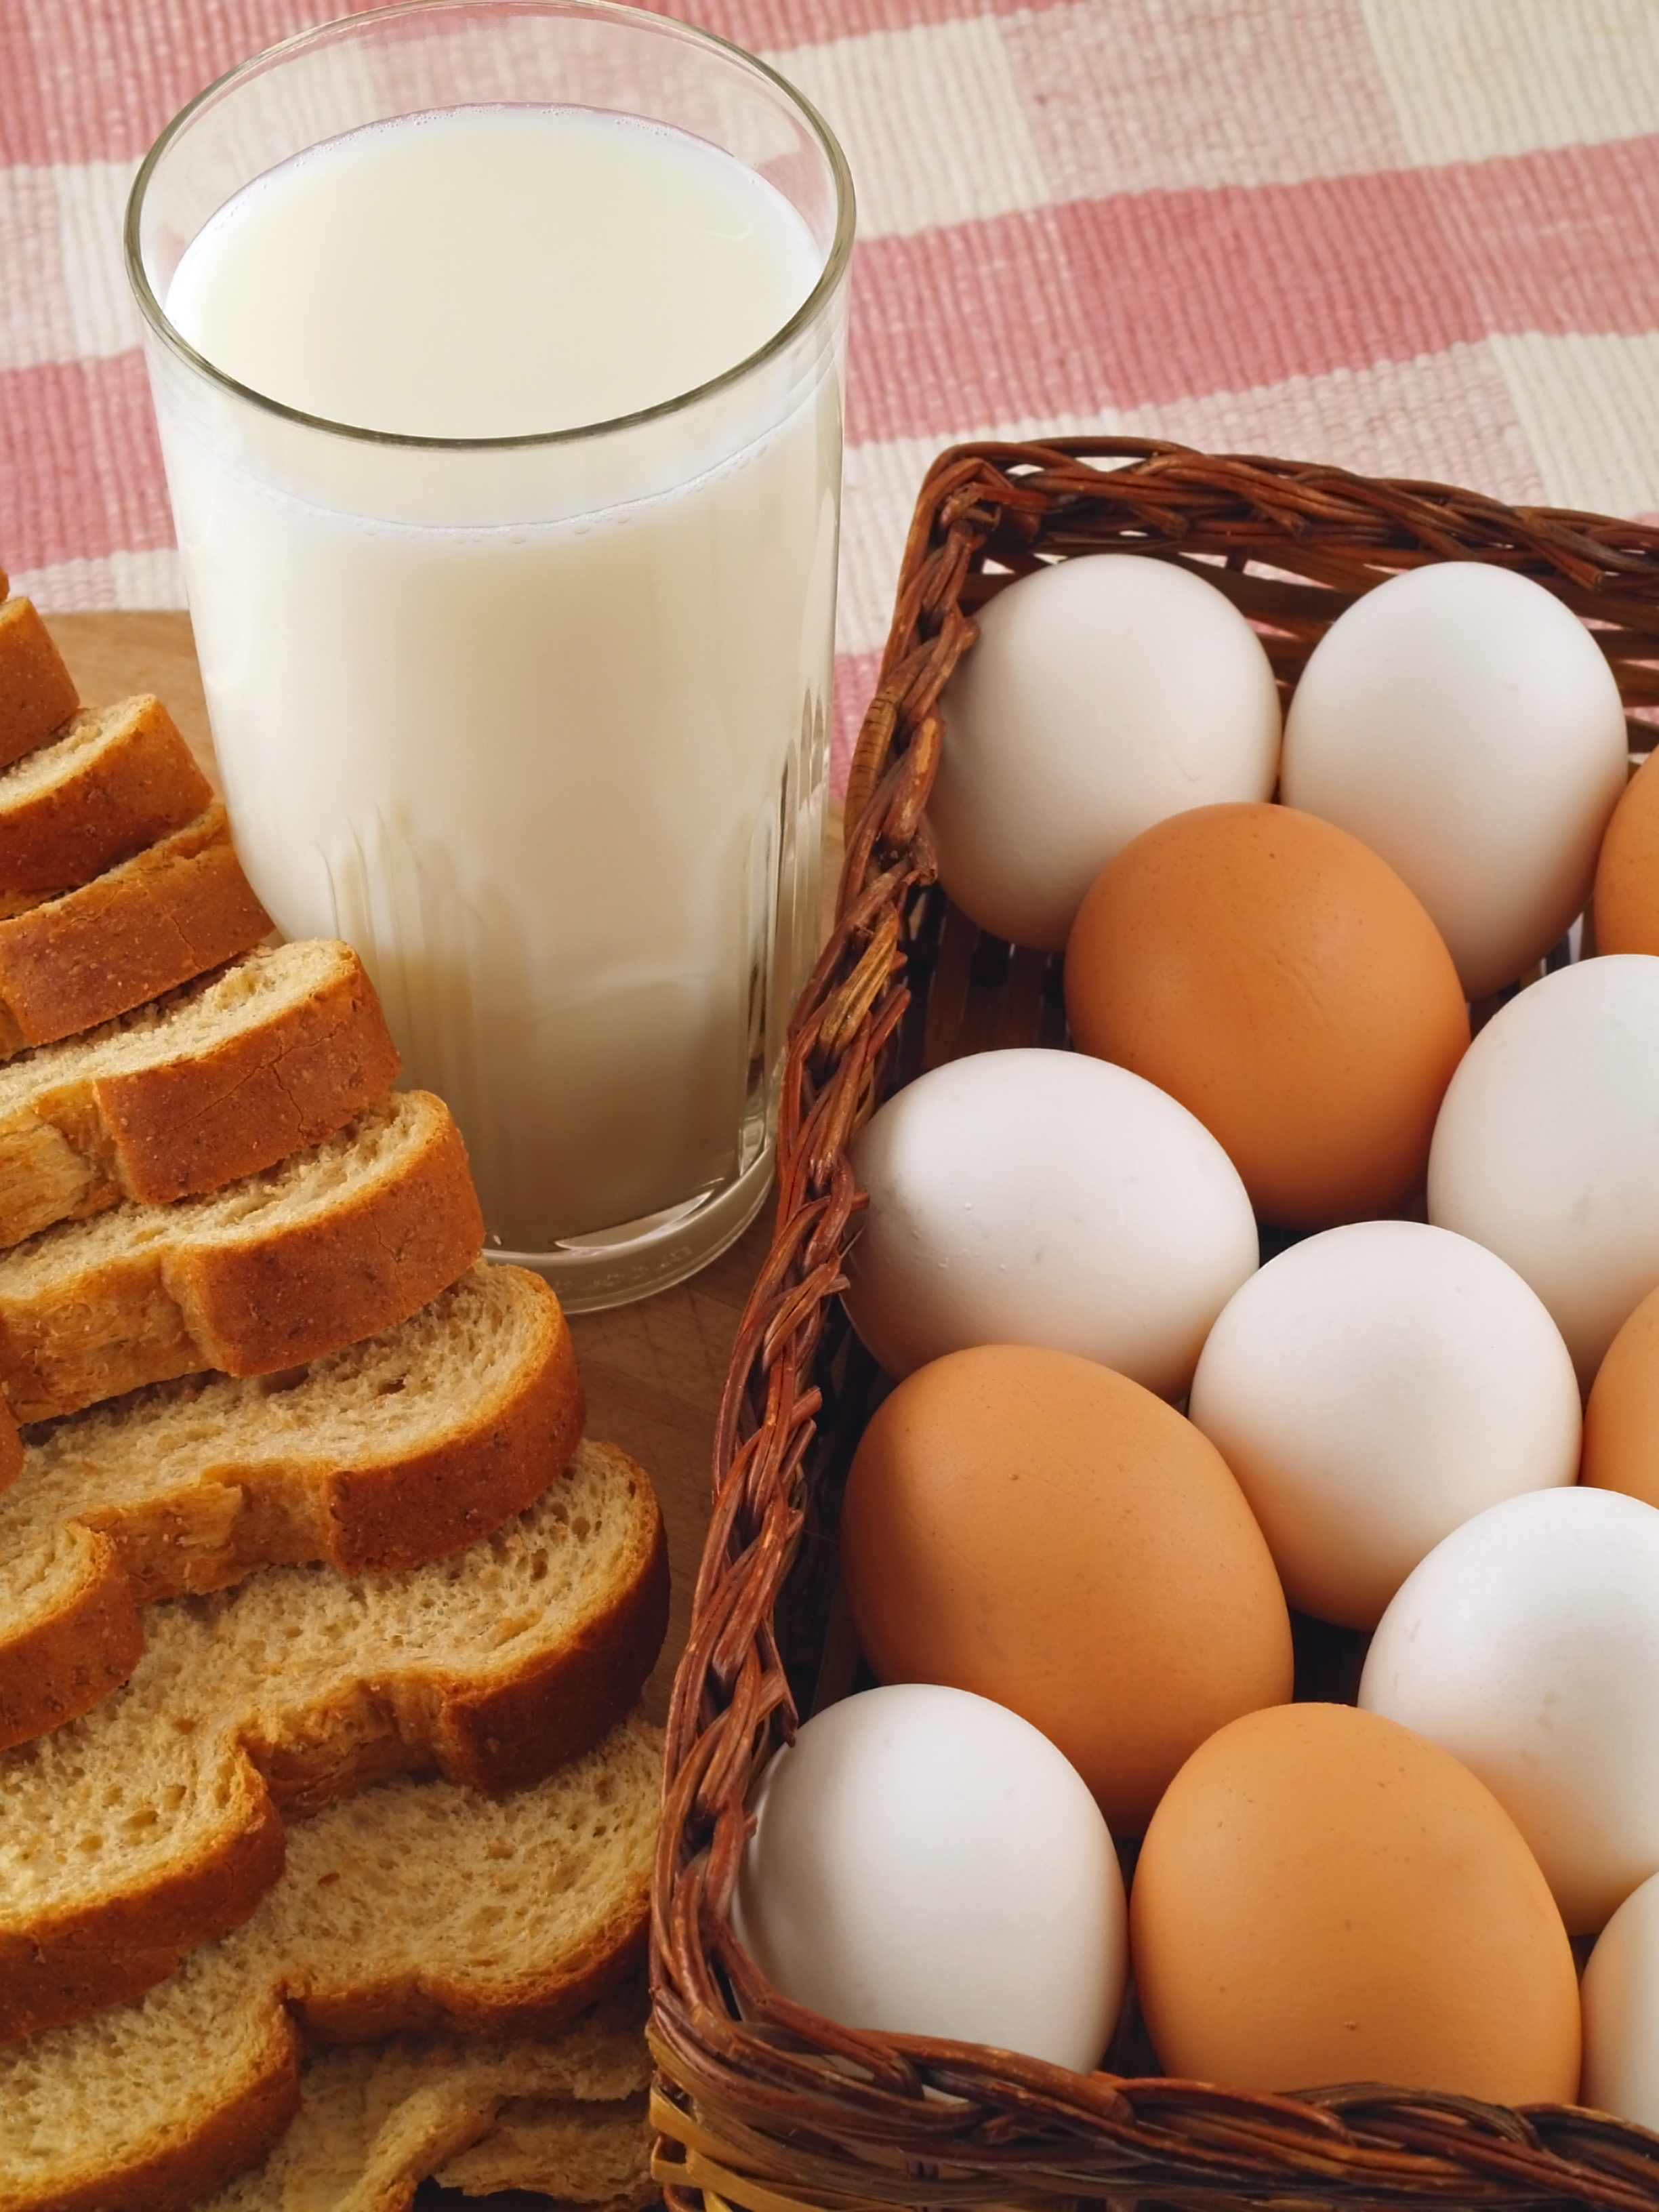 Why Do Americans Refrigerate Their Eggs And Most Other